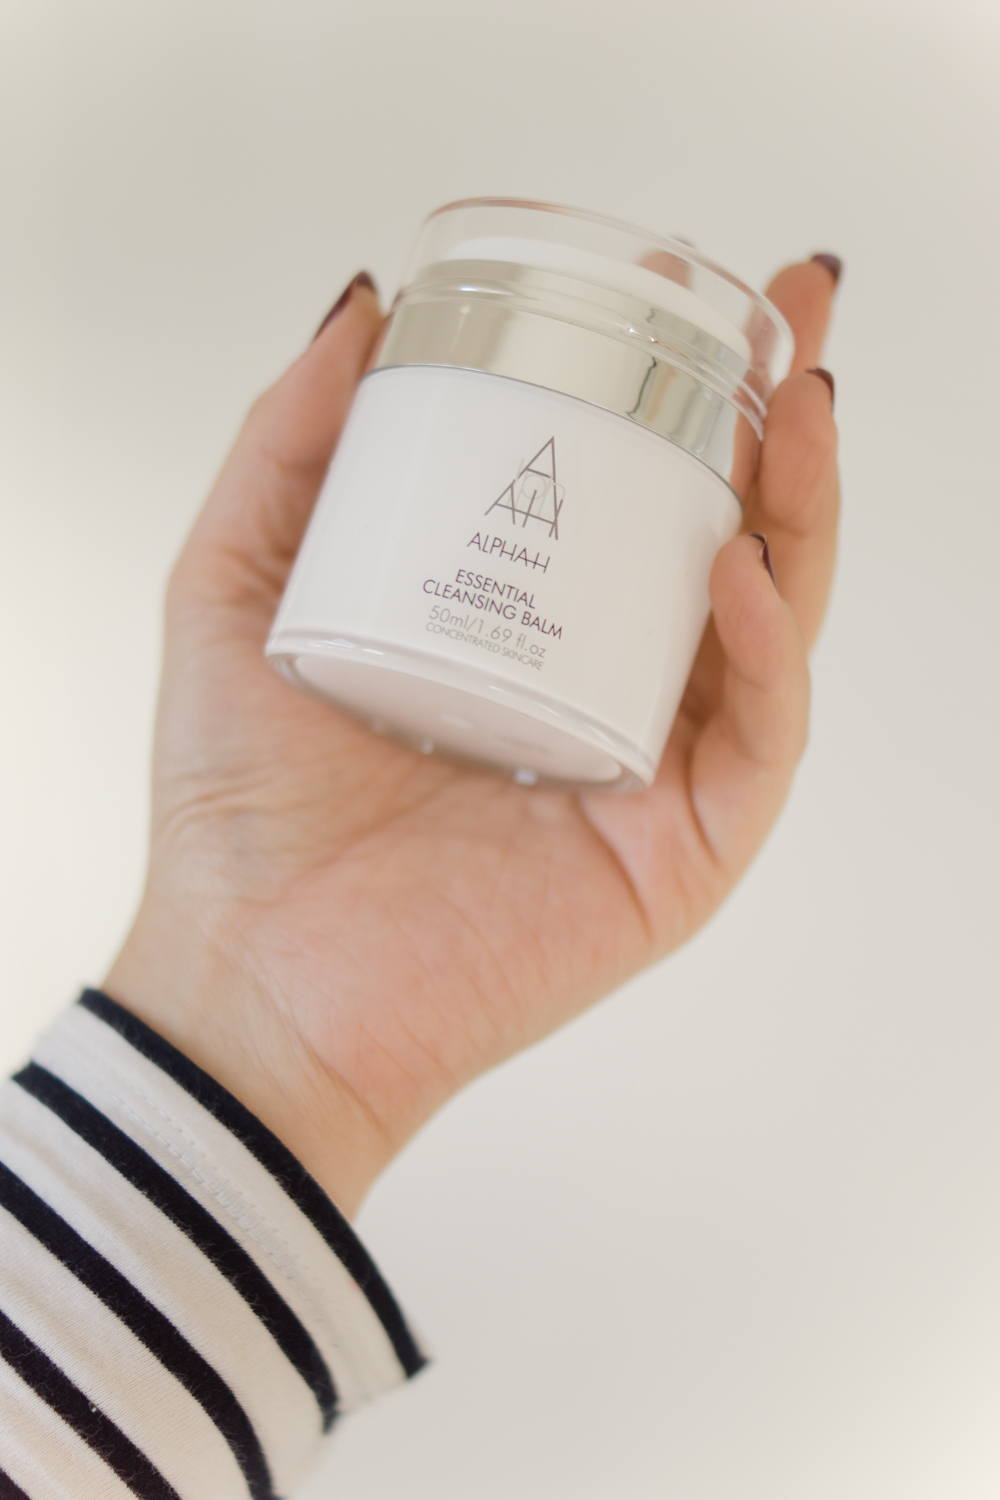 alpha-h-skincare-essential-cleansing-balm-review-barely-there-beauty-blog